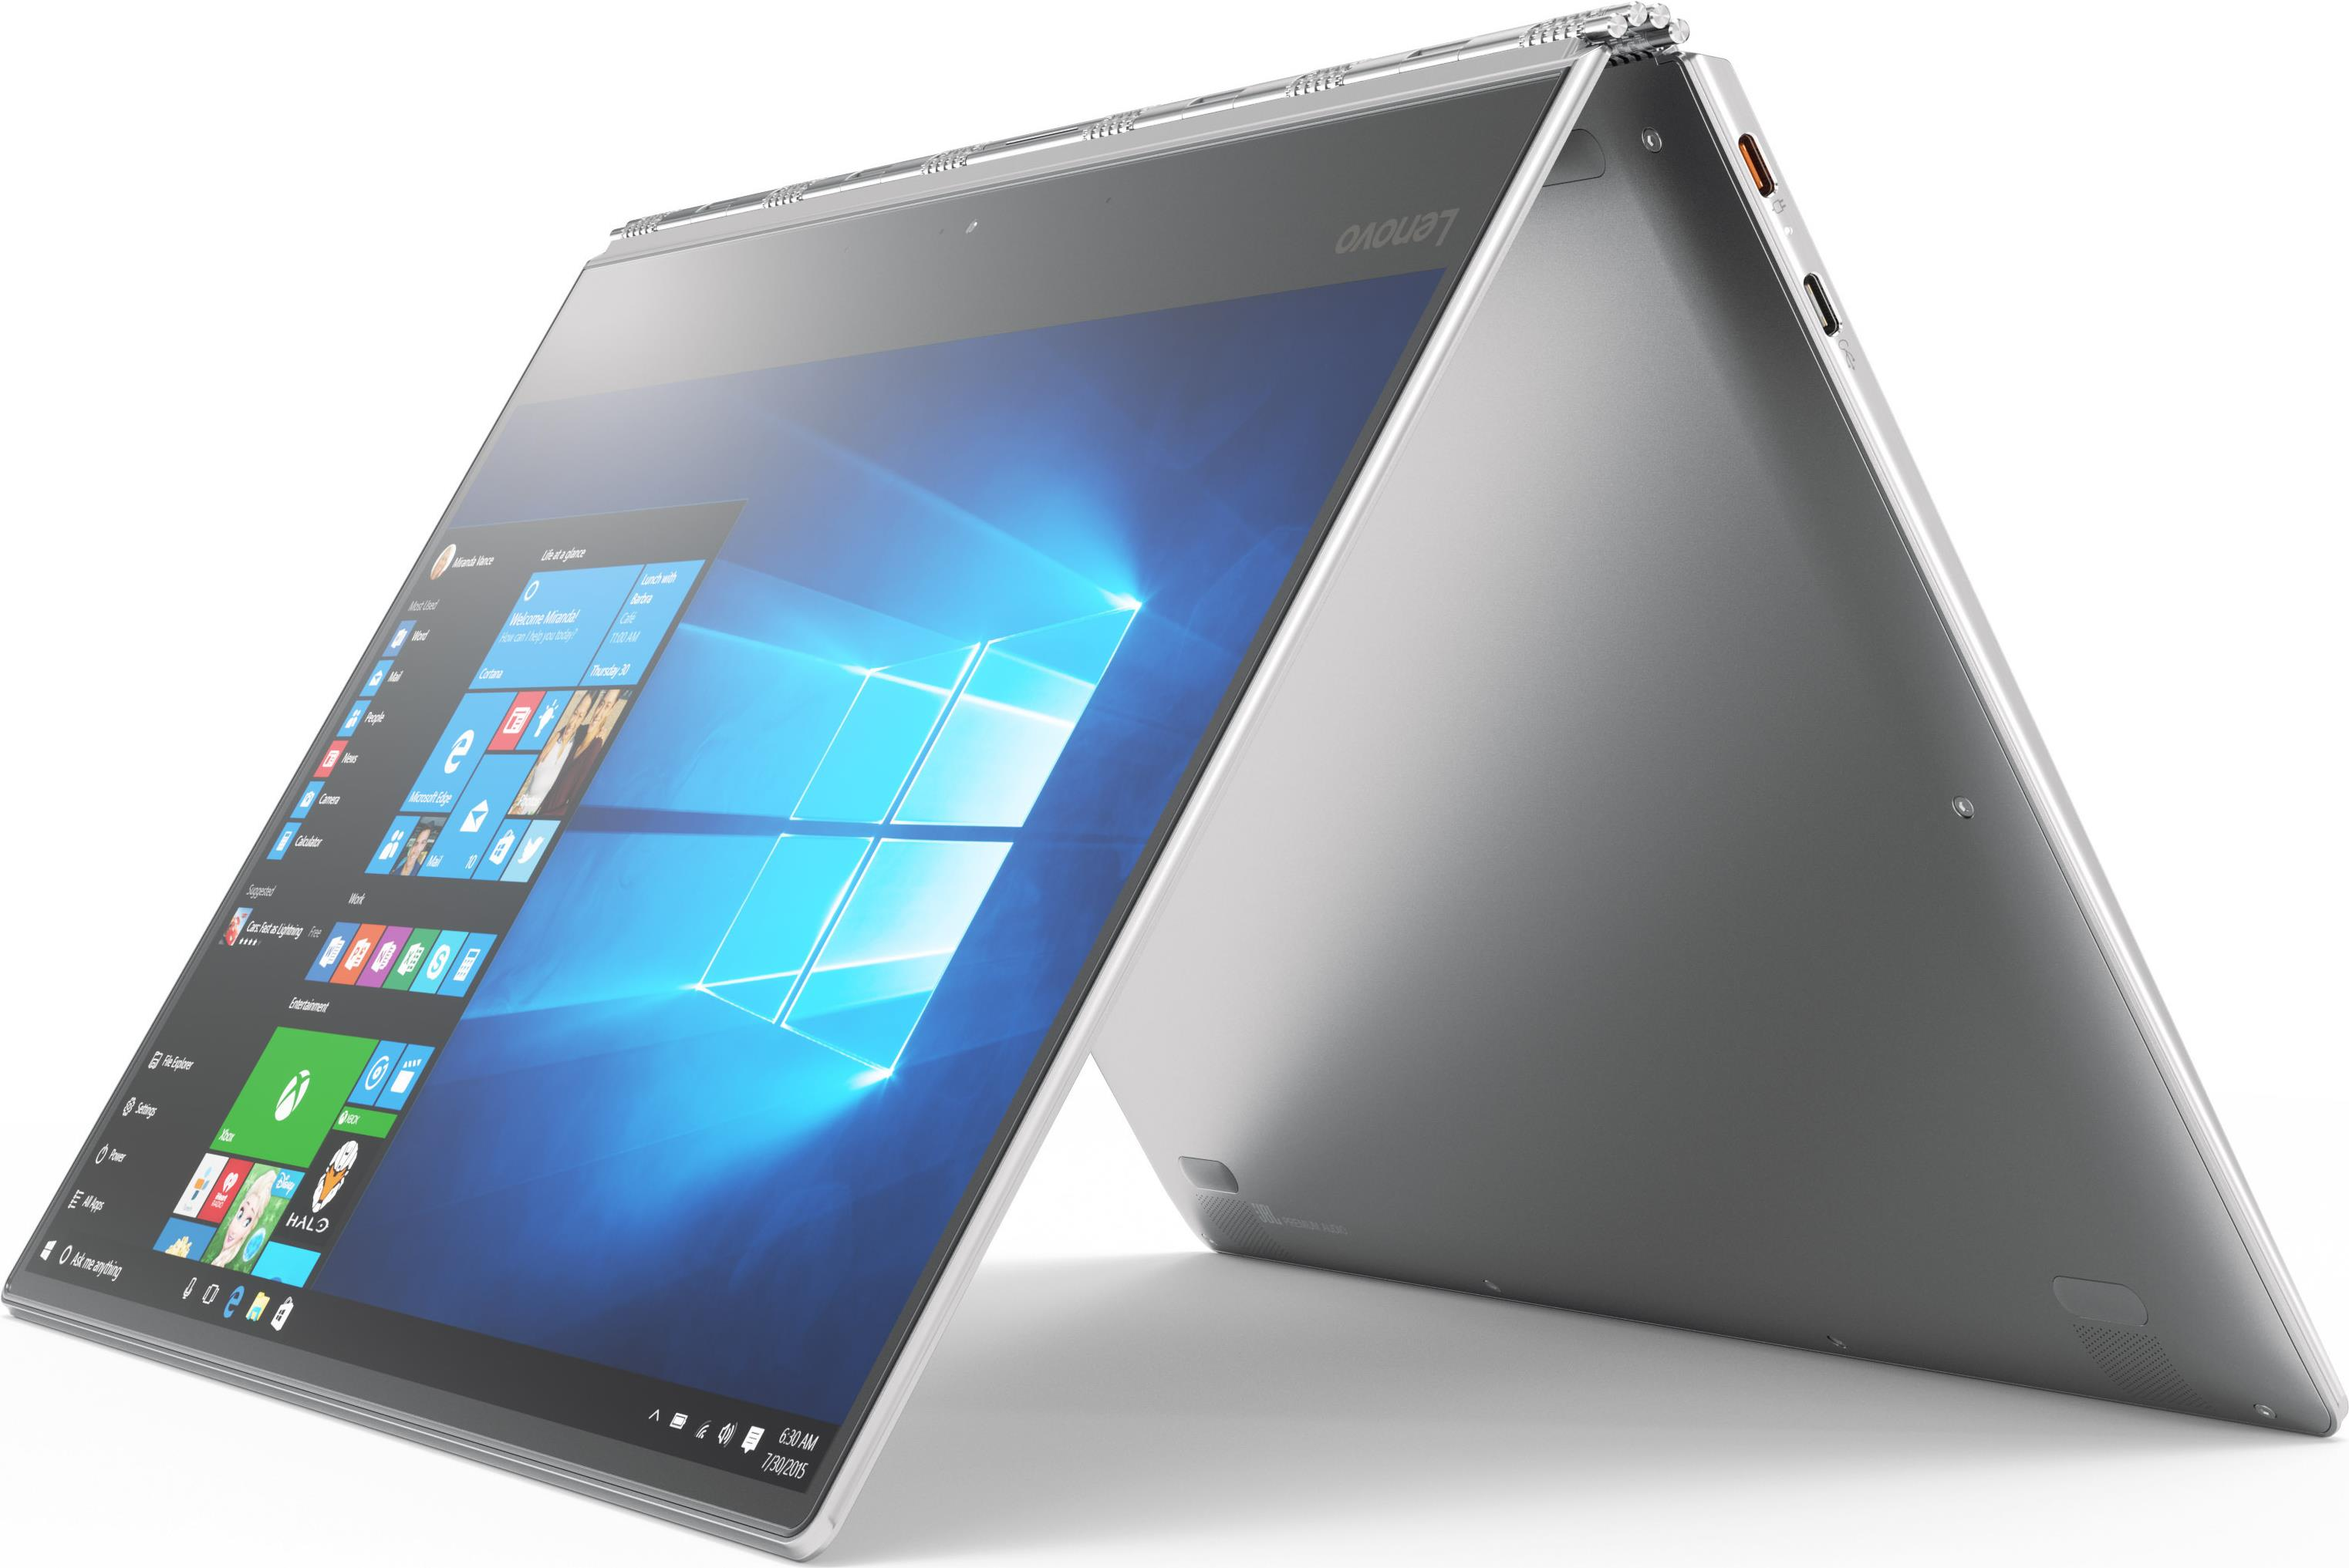 Lenovo Yoga 920 13IKB 80Y7 Flip Design Core i5 8250U 1 6 GHz Win 10 Home 64 Bit 8GB RAM